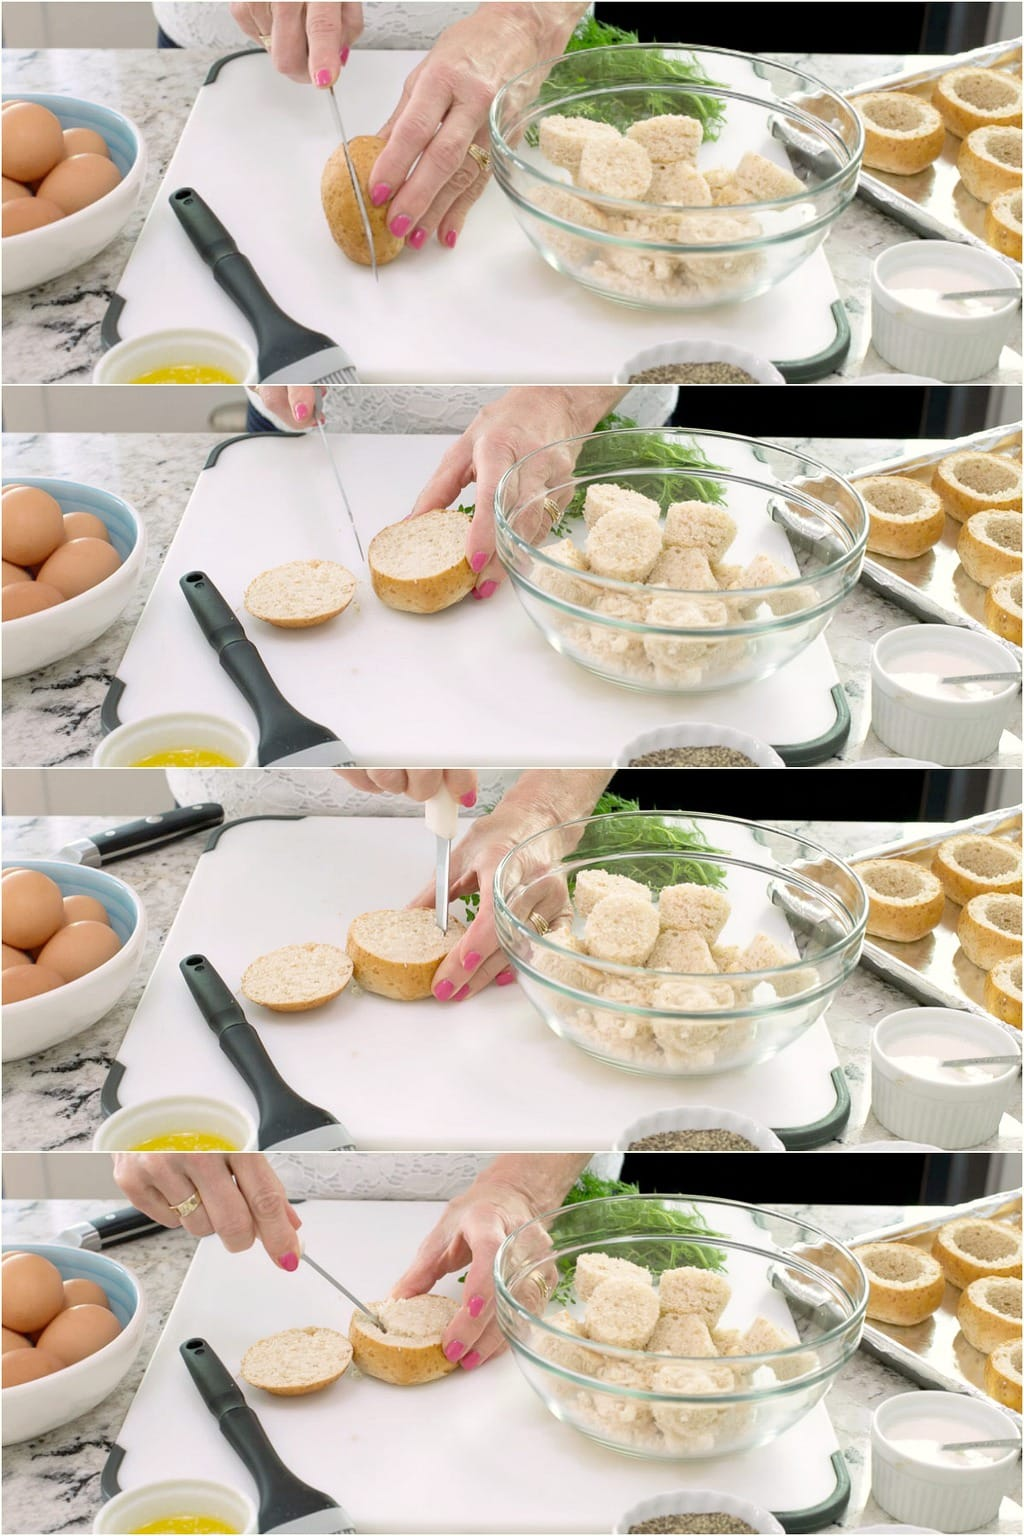 Step-by-step photo collage of how to make Baked Eggs in Bread Baskets.